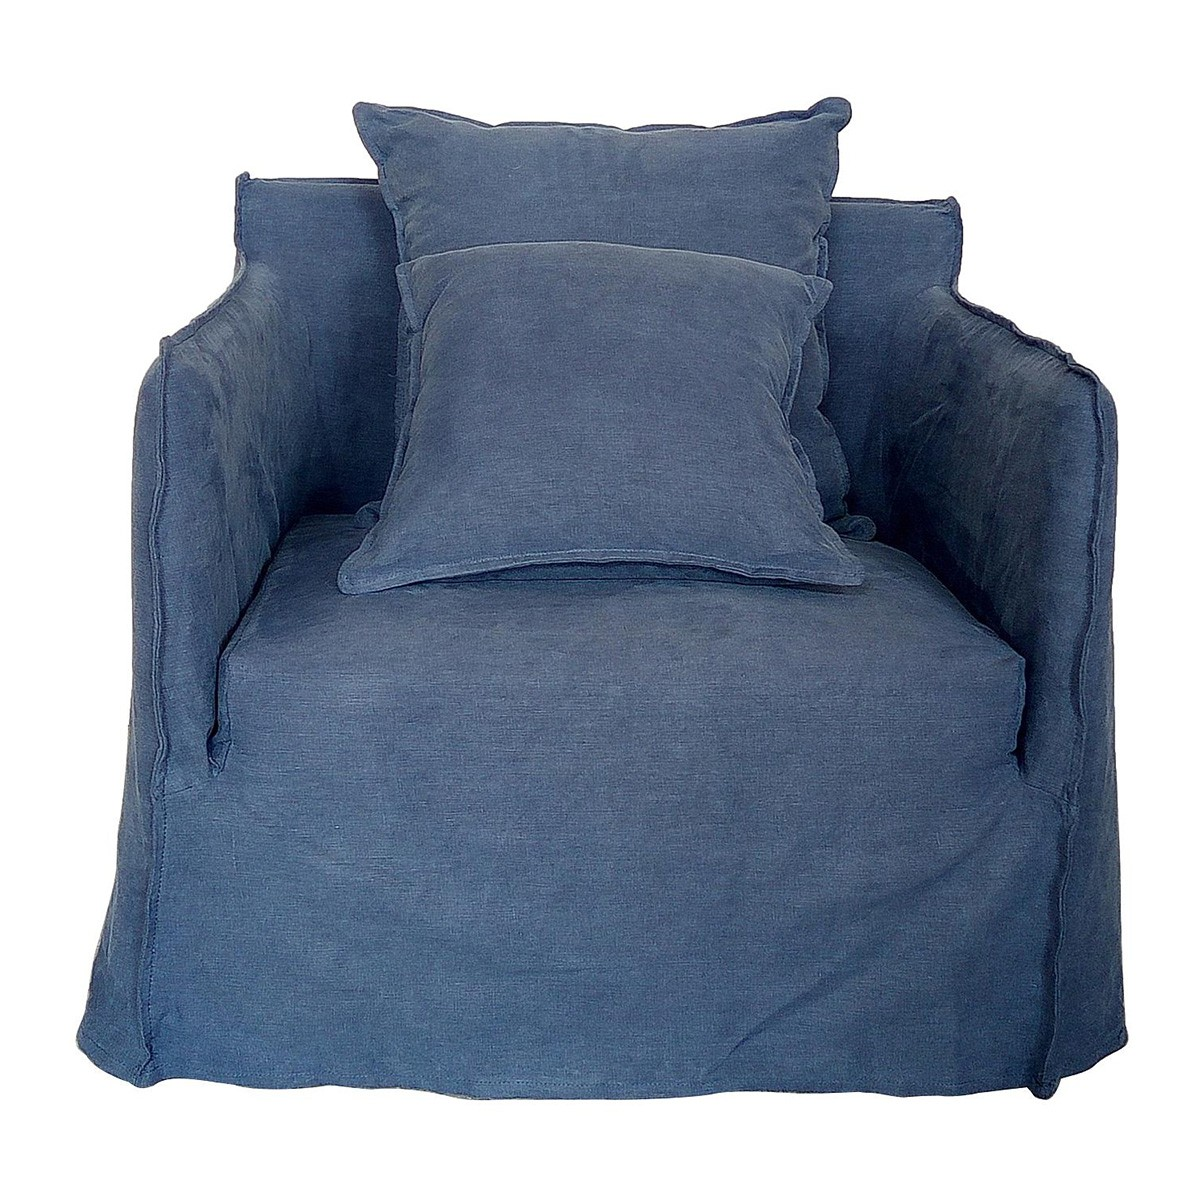 Casper Linen Slipcovered Armchair, Indigo